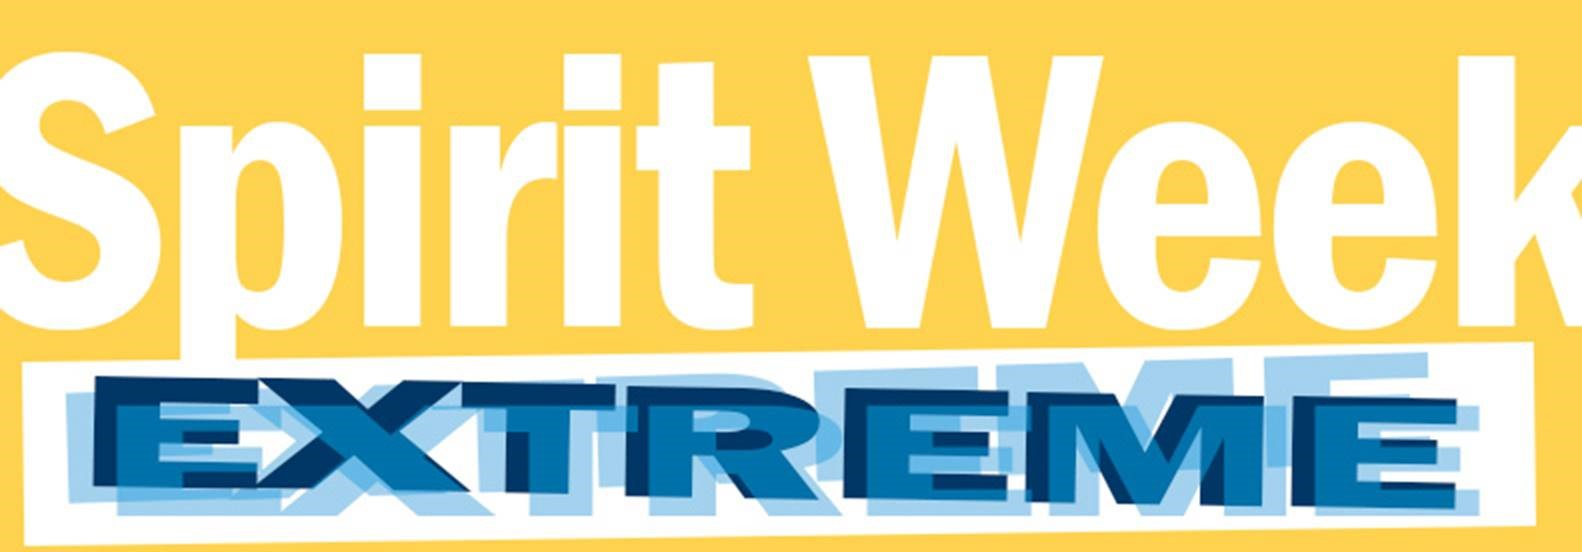 Spirit Week EXTREME logo